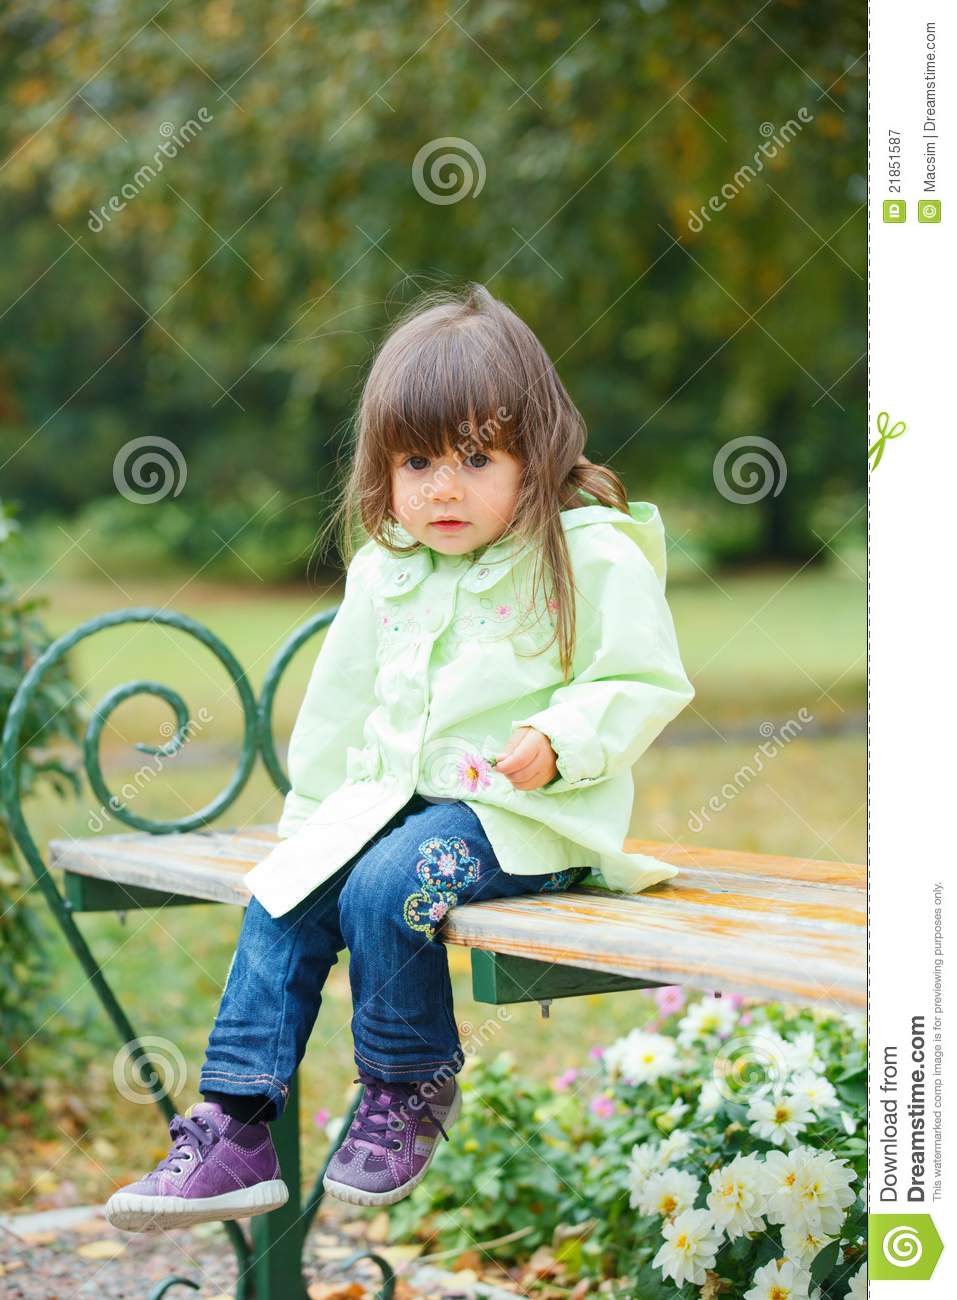 Little Girl Sitting On A Bench In The Park Royalty Free